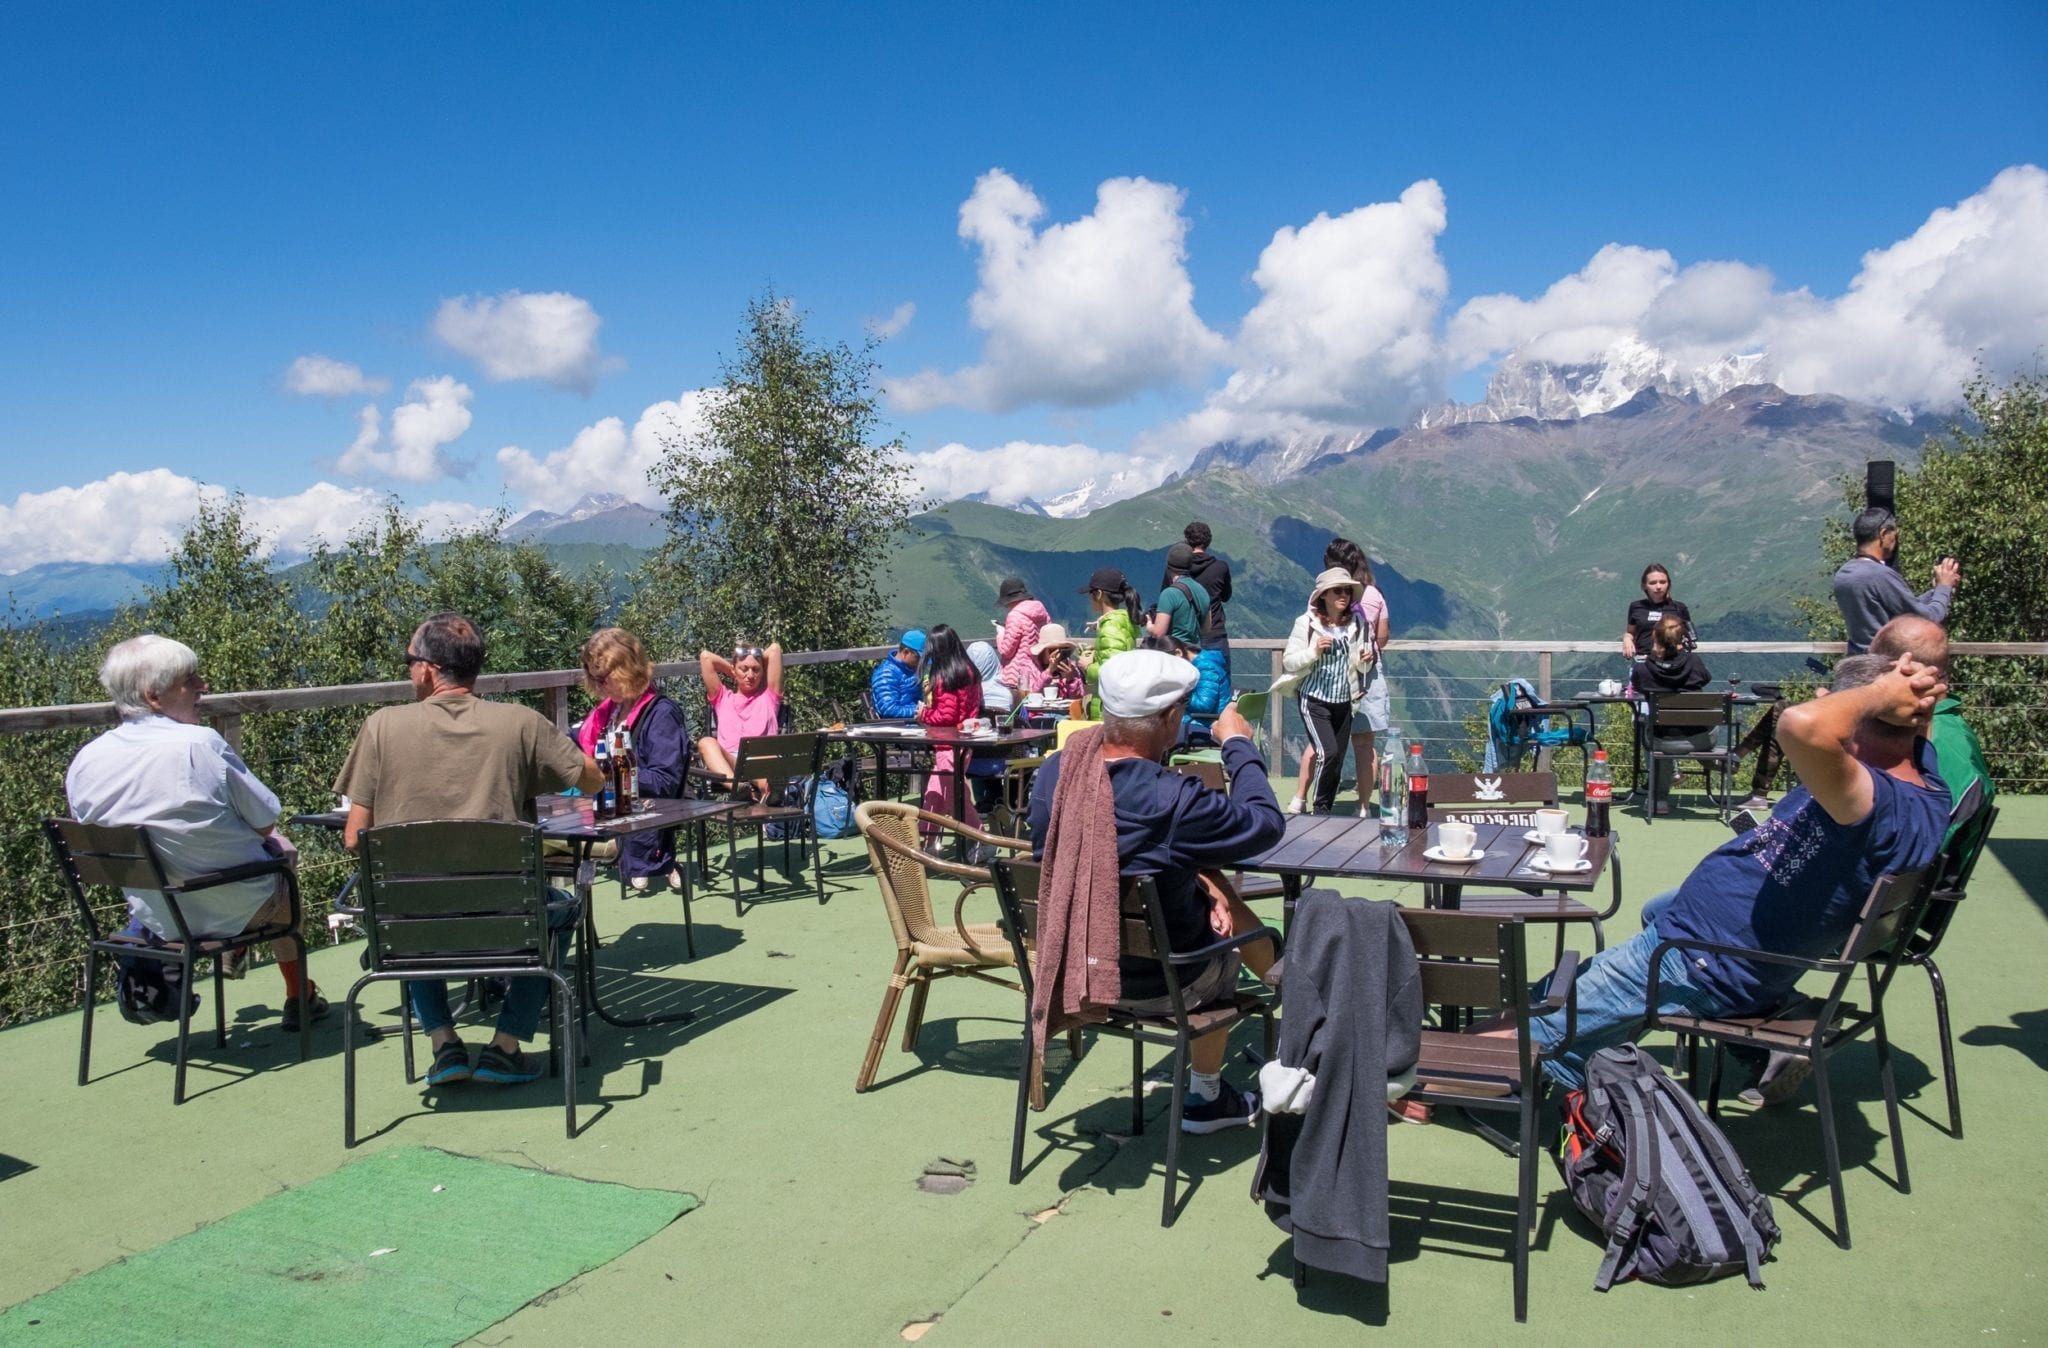 People eating outside at tables on a patio overlooking the mountains of Svaneti.